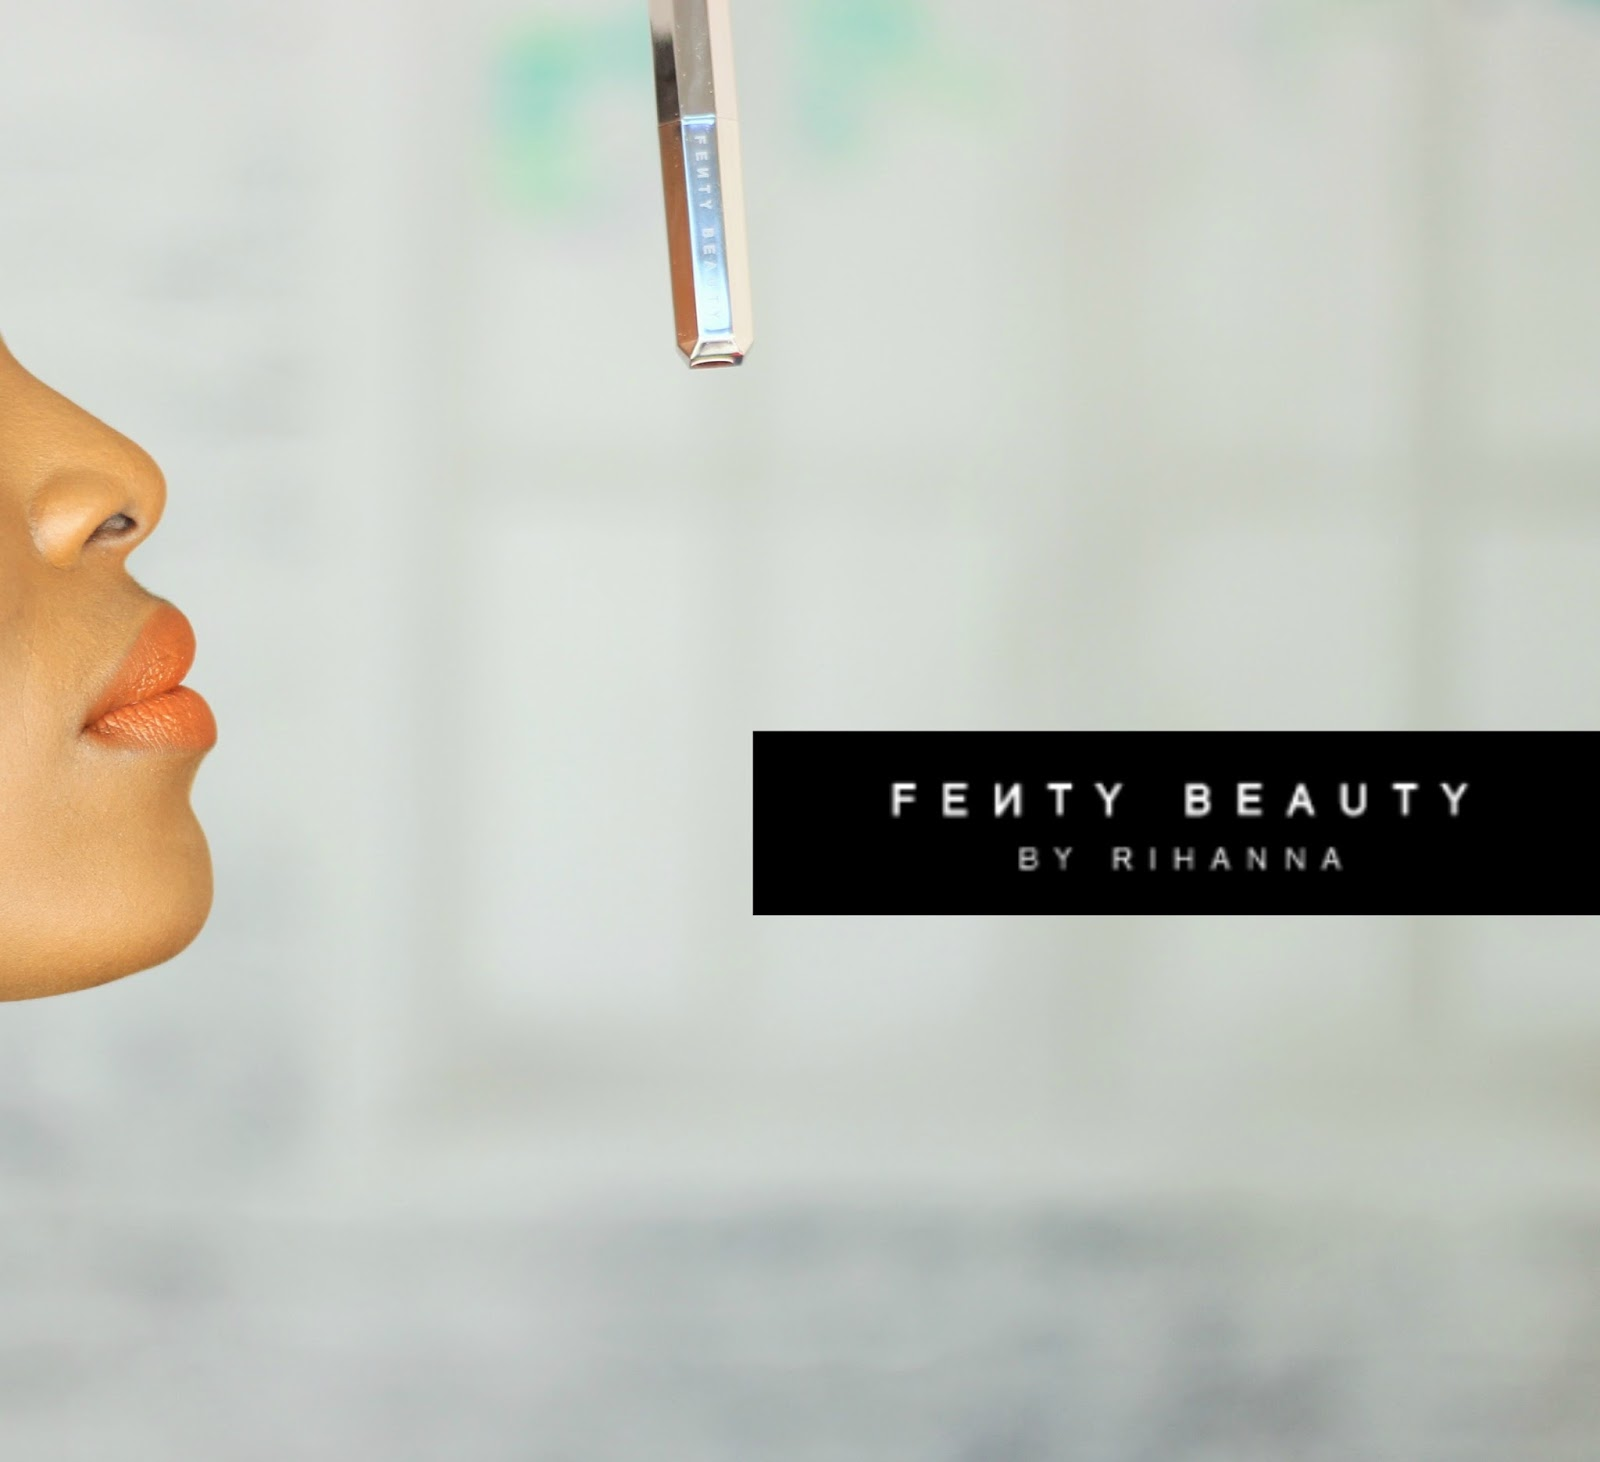 FENTY BEAUTY LIPSTICK GIVEAWAY, REVIEW + TUTORIAL